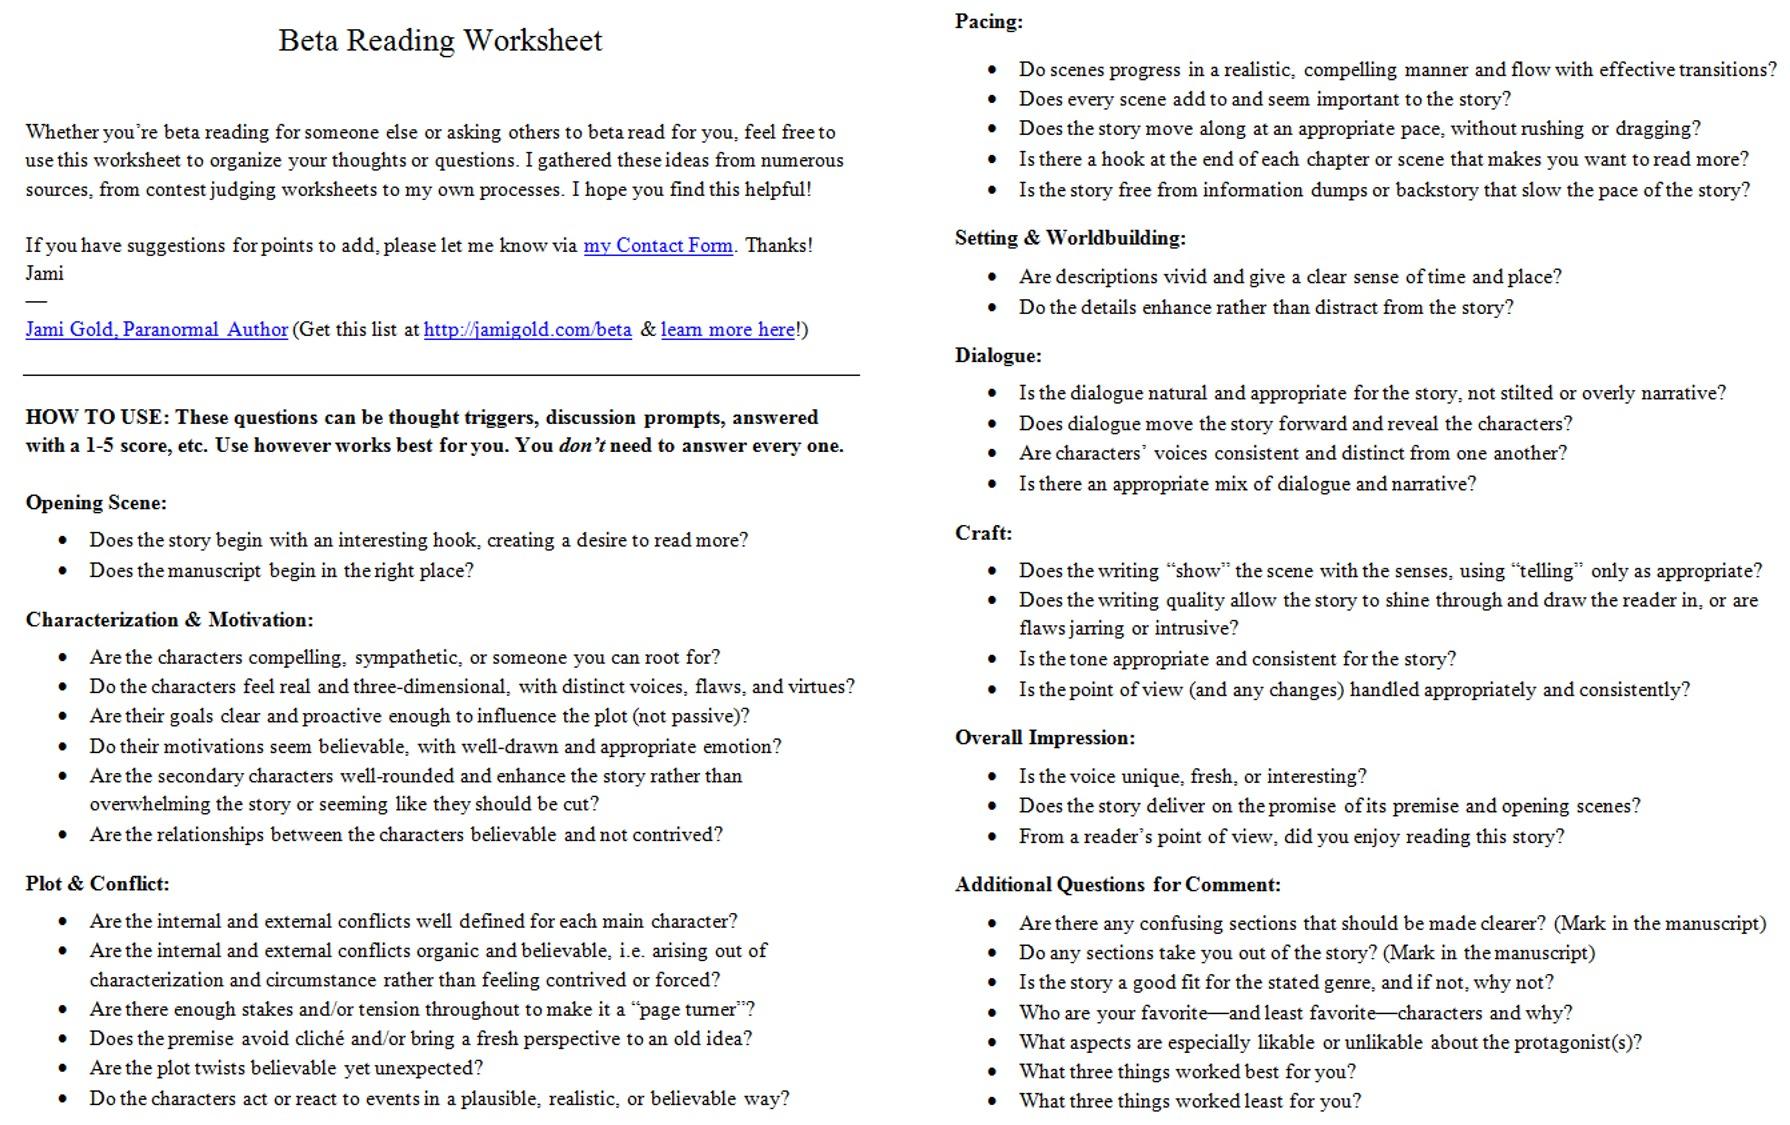 Proatmealus  Marvellous Worksheets For Writers  Jami Gold Paranormal Author With Engaging Screen Shot Of The Twopage Beta Reading Worksheet With Astonishing Dividing Complex Numbers Worksheet Also Simplifying Trig Expressions Worksheet In Addition Ancient Greece Map Worksheet And Thought Stopping Worksheet As Well As Ancient Egypt Worksheets Additionally Counting Coins Worksheets Nd Grade From Jamigoldcom With Proatmealus  Engaging Worksheets For Writers  Jami Gold Paranormal Author With Astonishing Screen Shot Of The Twopage Beta Reading Worksheet And Marvellous Dividing Complex Numbers Worksheet Also Simplifying Trig Expressions Worksheet In Addition Ancient Greece Map Worksheet From Jamigoldcom